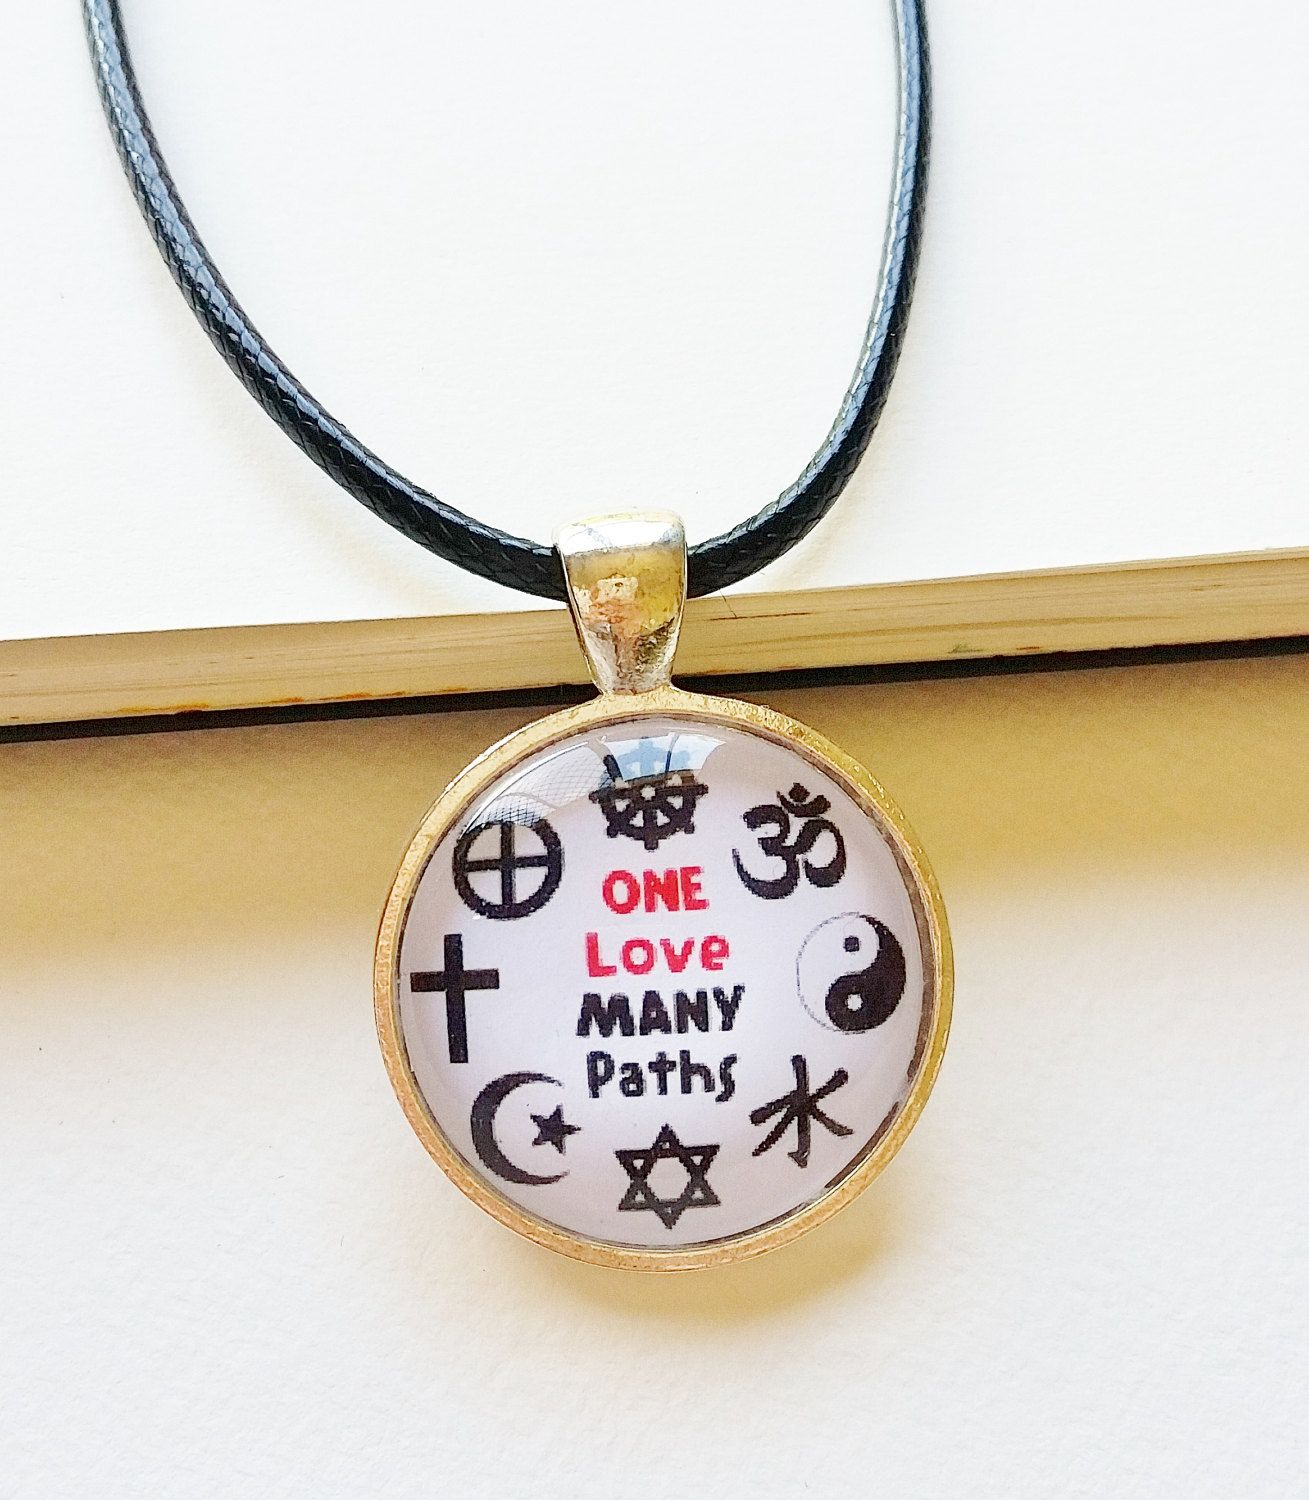 World religious acceptance necklace coexist necklace religious world religious acceptance necklace coexist necklace religious jewelry peace jewelry coexist jewelry aloadofball Gallery